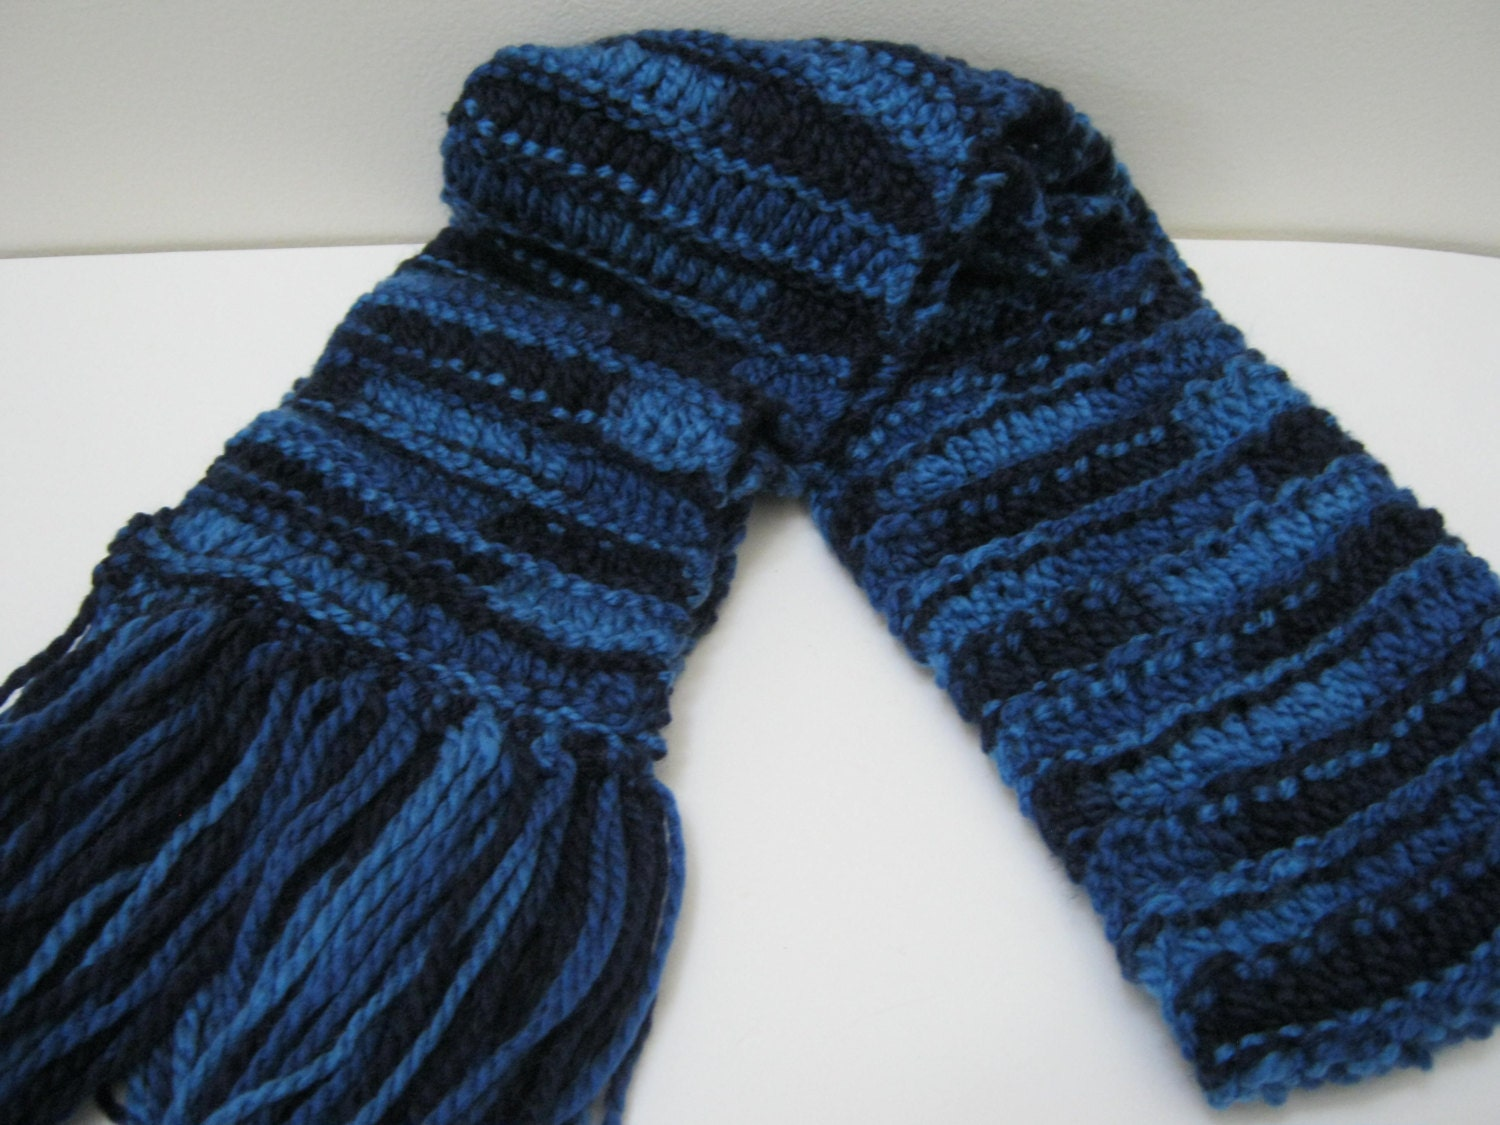 Ribbon Knitting Patterns : Ribbon Scarf Knitting Pattern Pictures - Inspirational Pictures